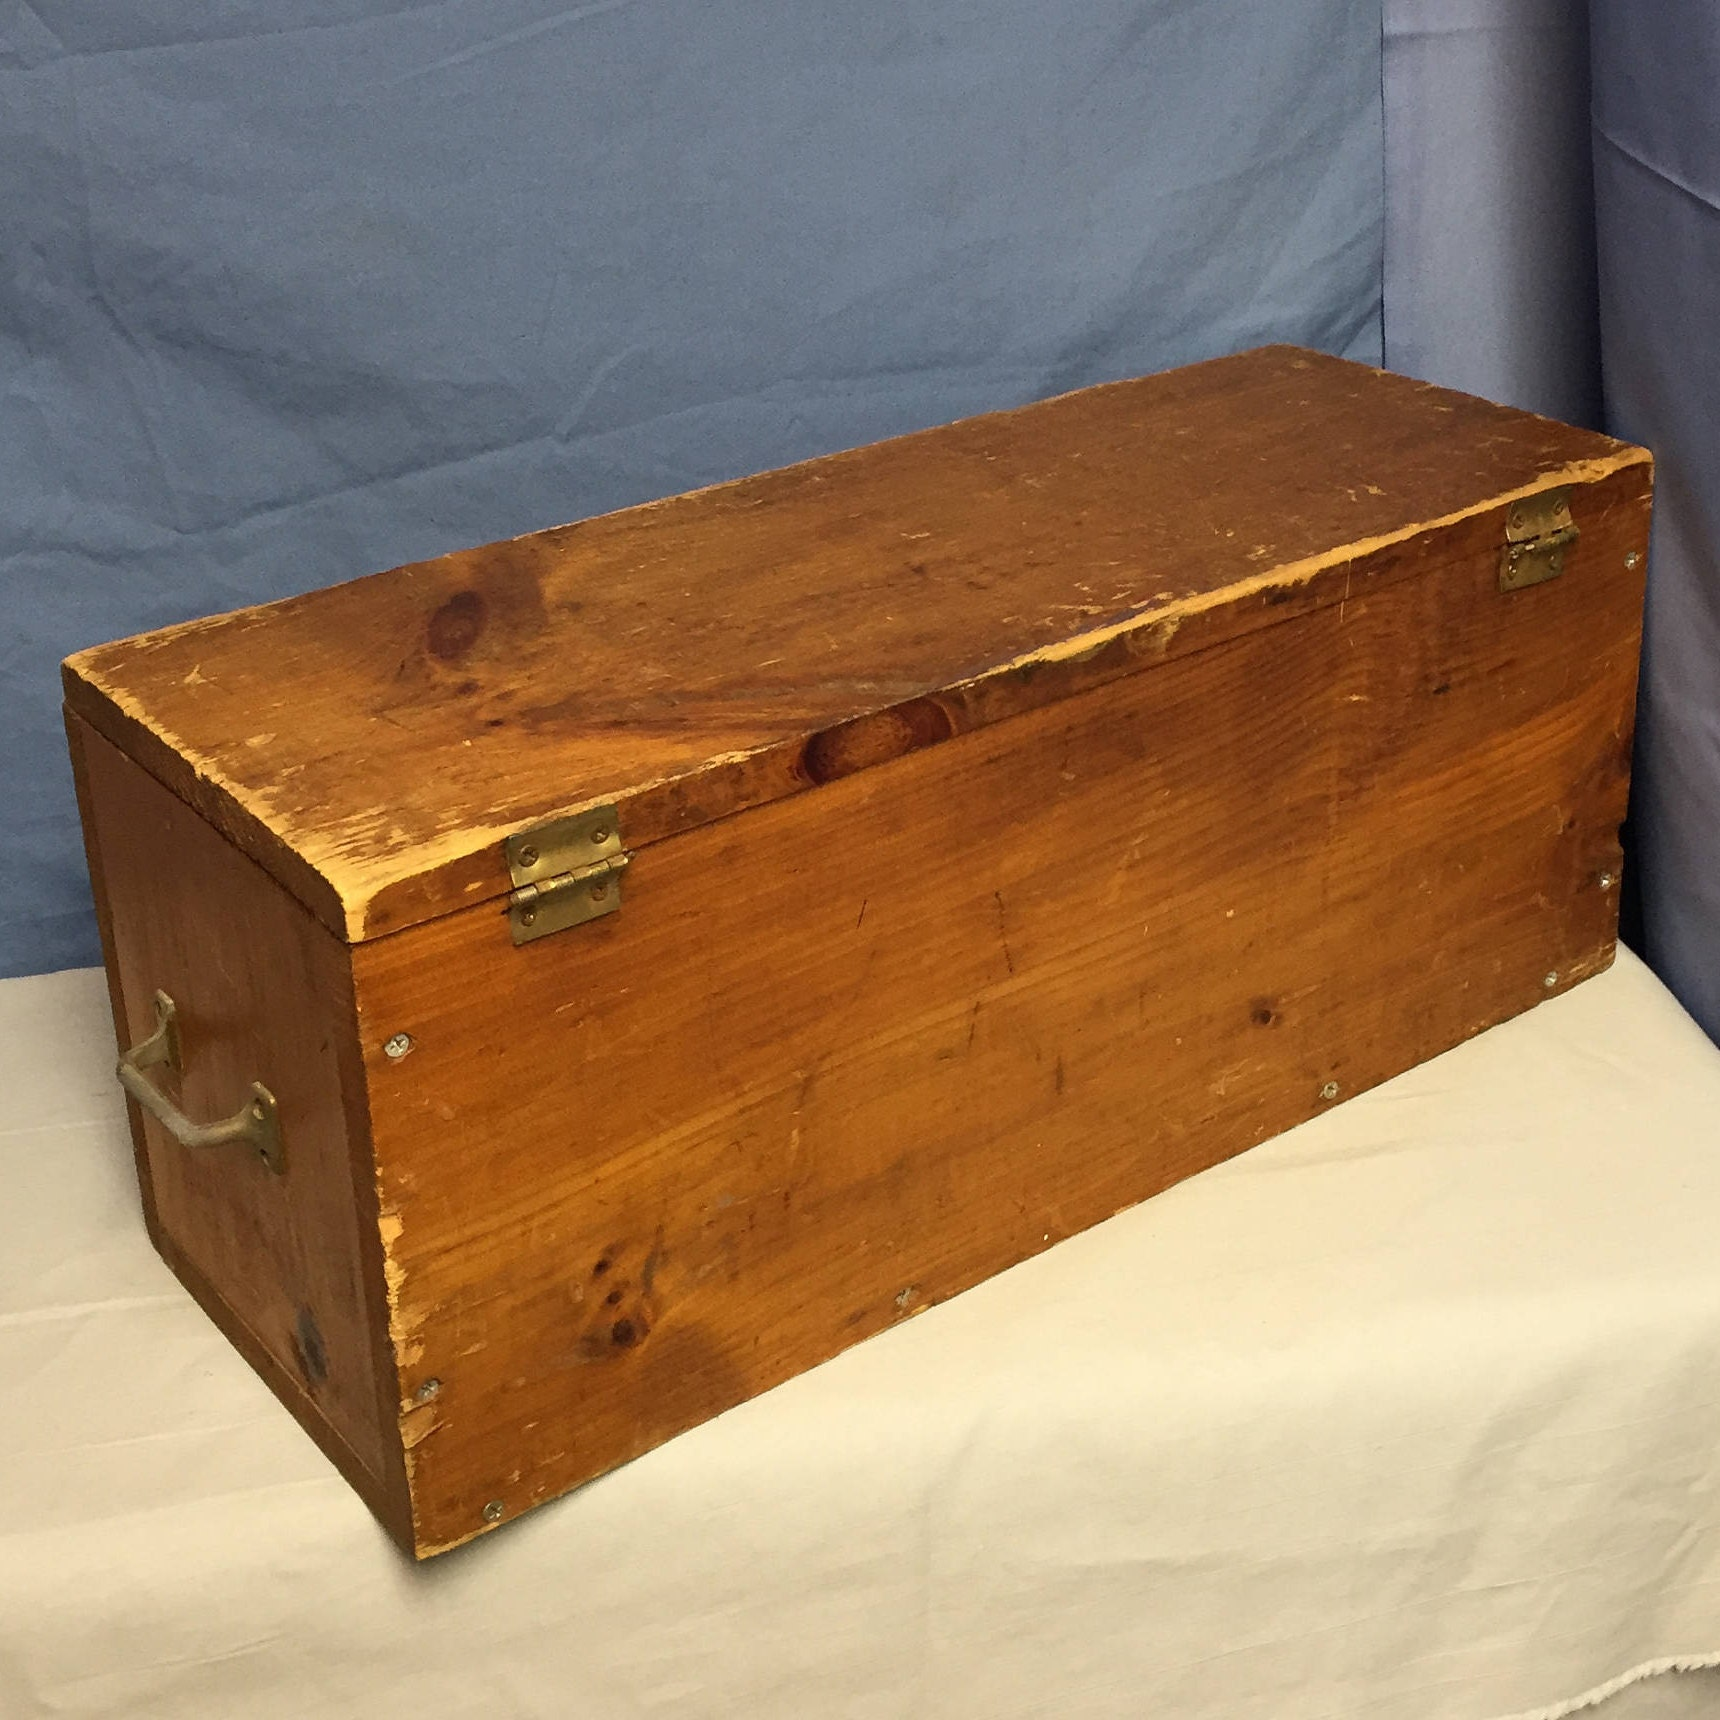 Wooden Chest Hardware ~ Wooden box with handles storage trunk